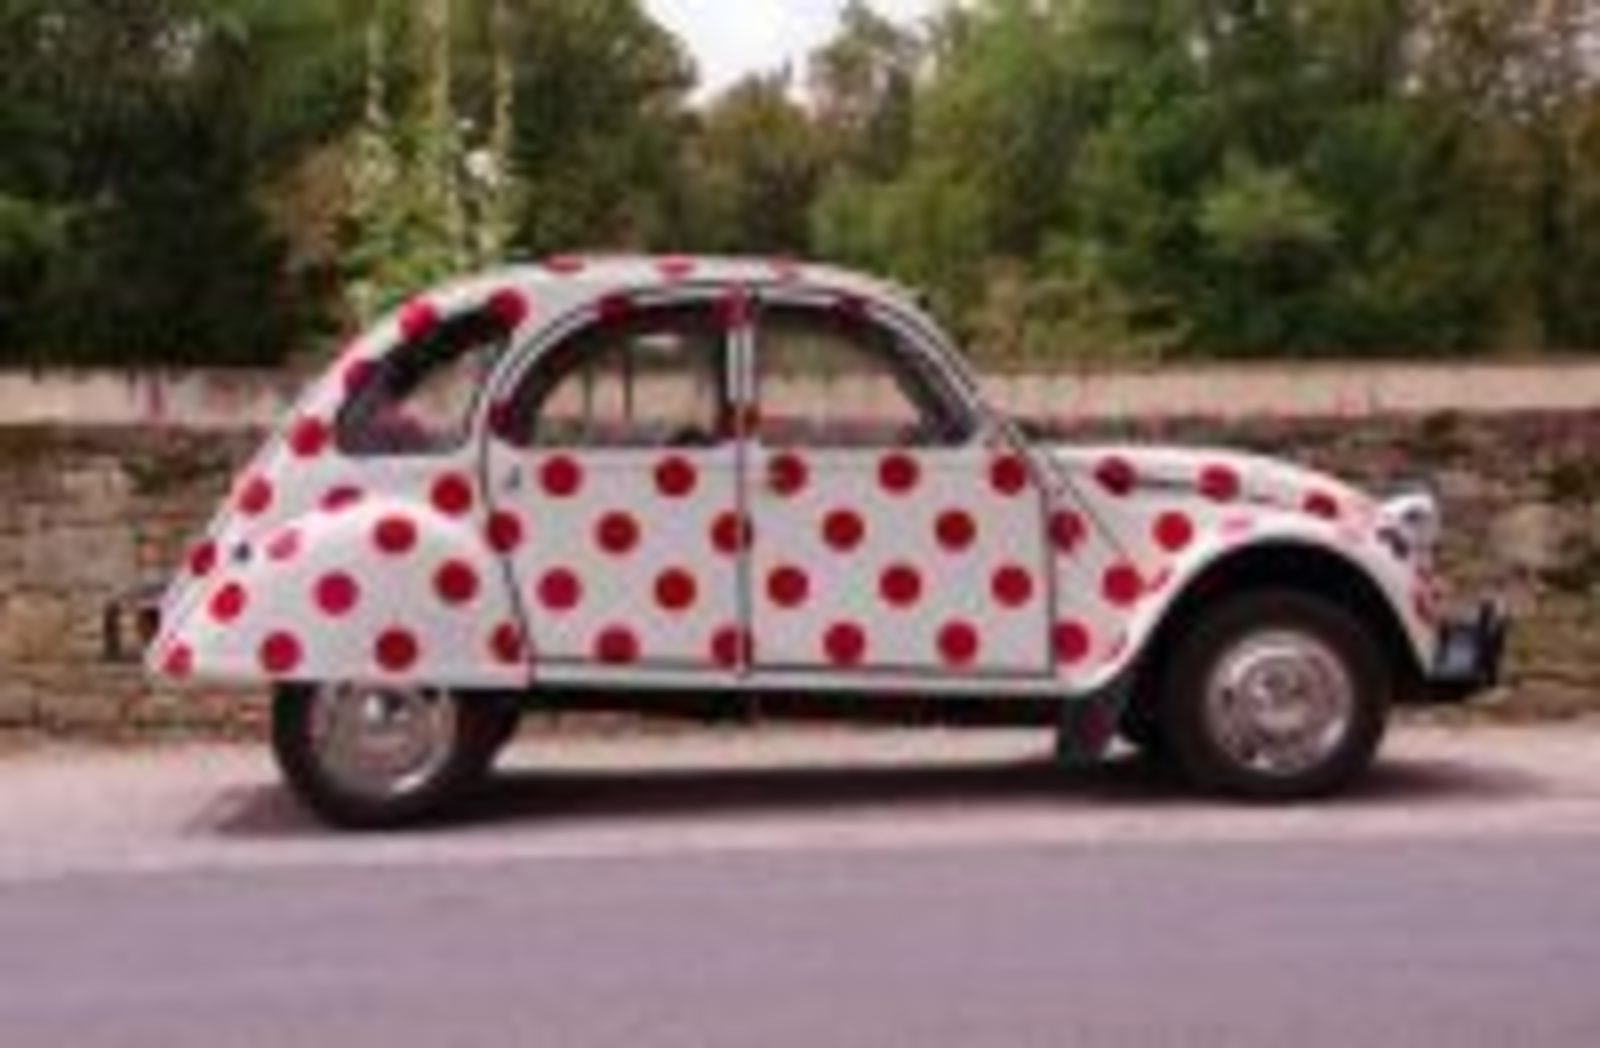 2cv-red-dots-free-license-cc0-1-of-1-980×649